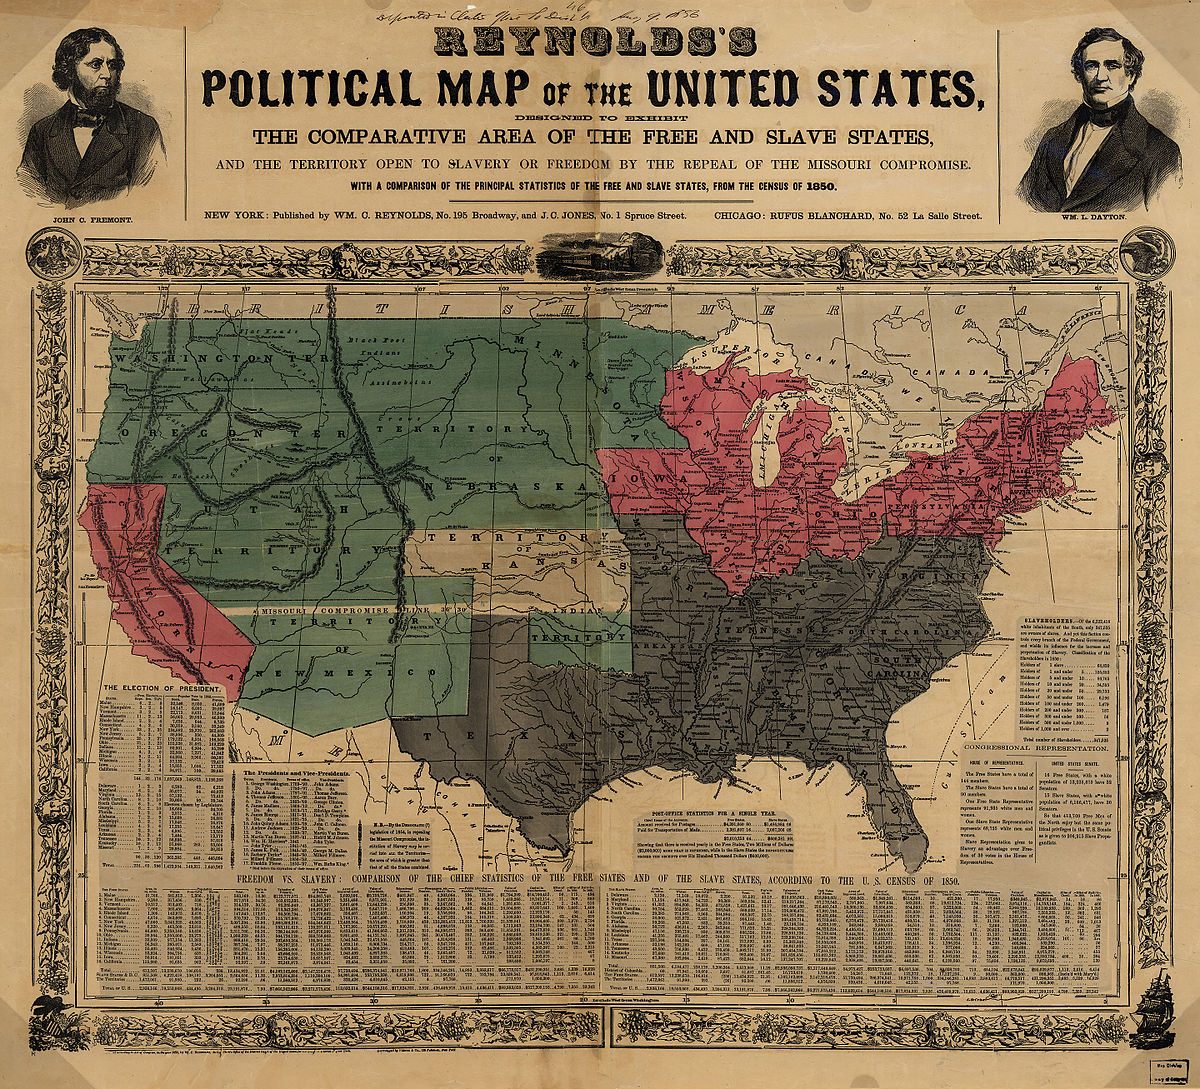 """""""Reynolds's Political Map of the United States"""" (1856)    from the Library of Congress Geography and Map Division"""